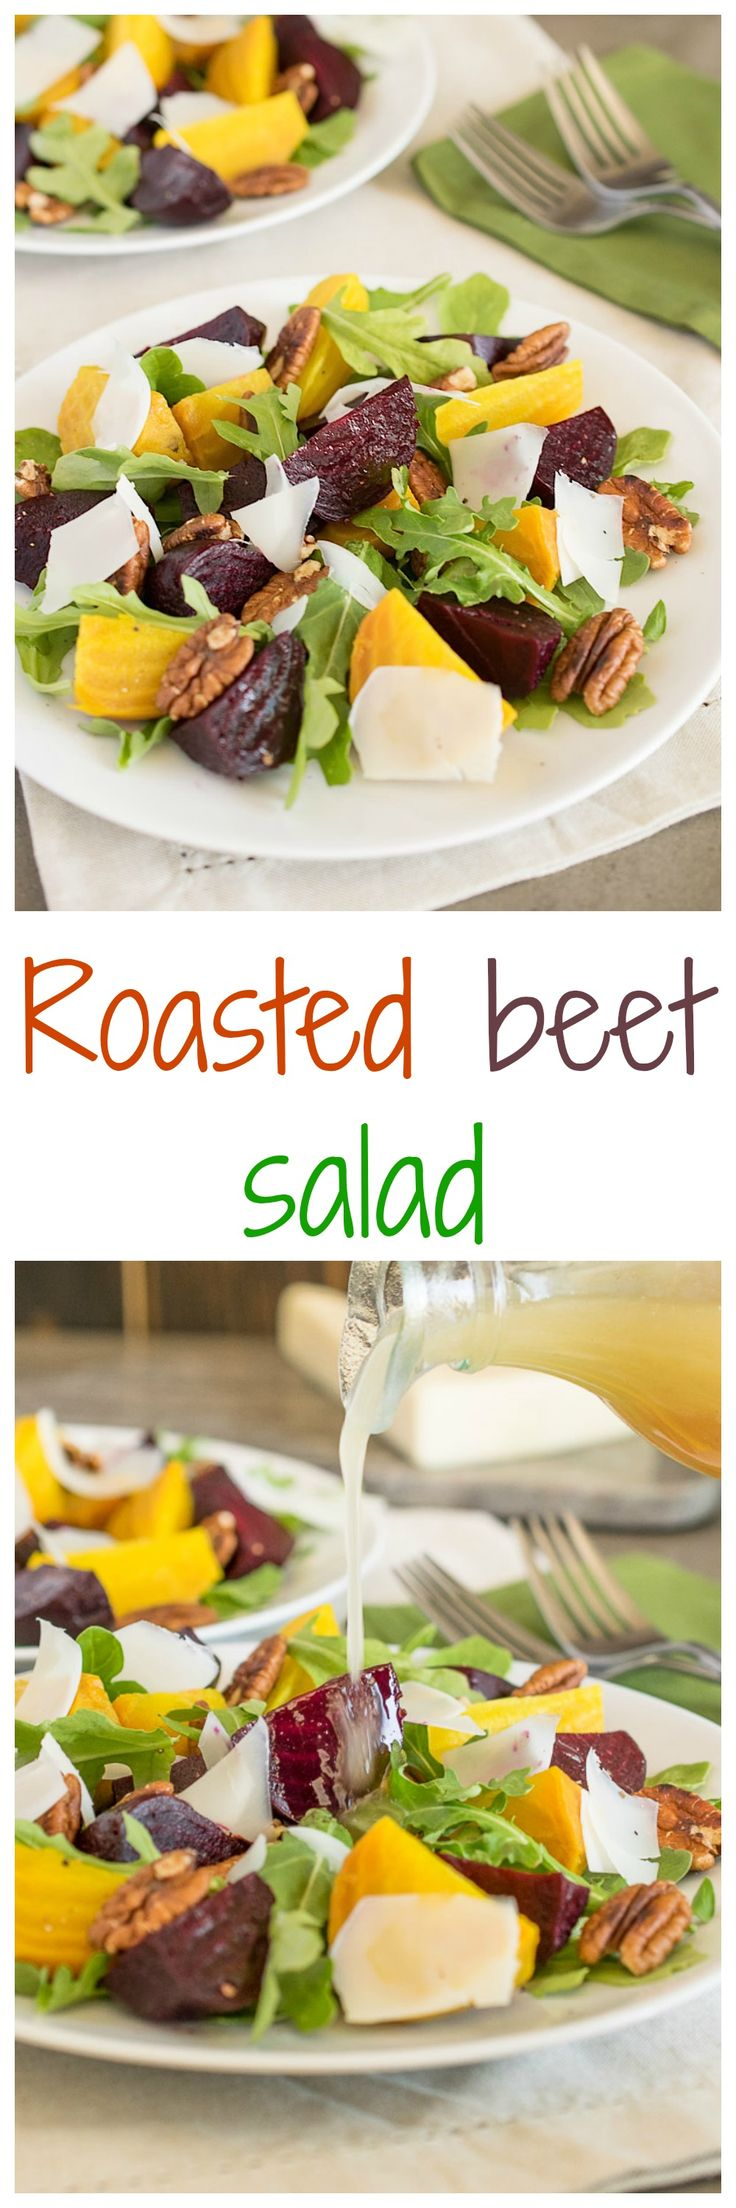 Red and gold beets roasted to perfection served over arugula with toasted pecans with a light lemon vinaigrette. #healthysalad #lowcarb